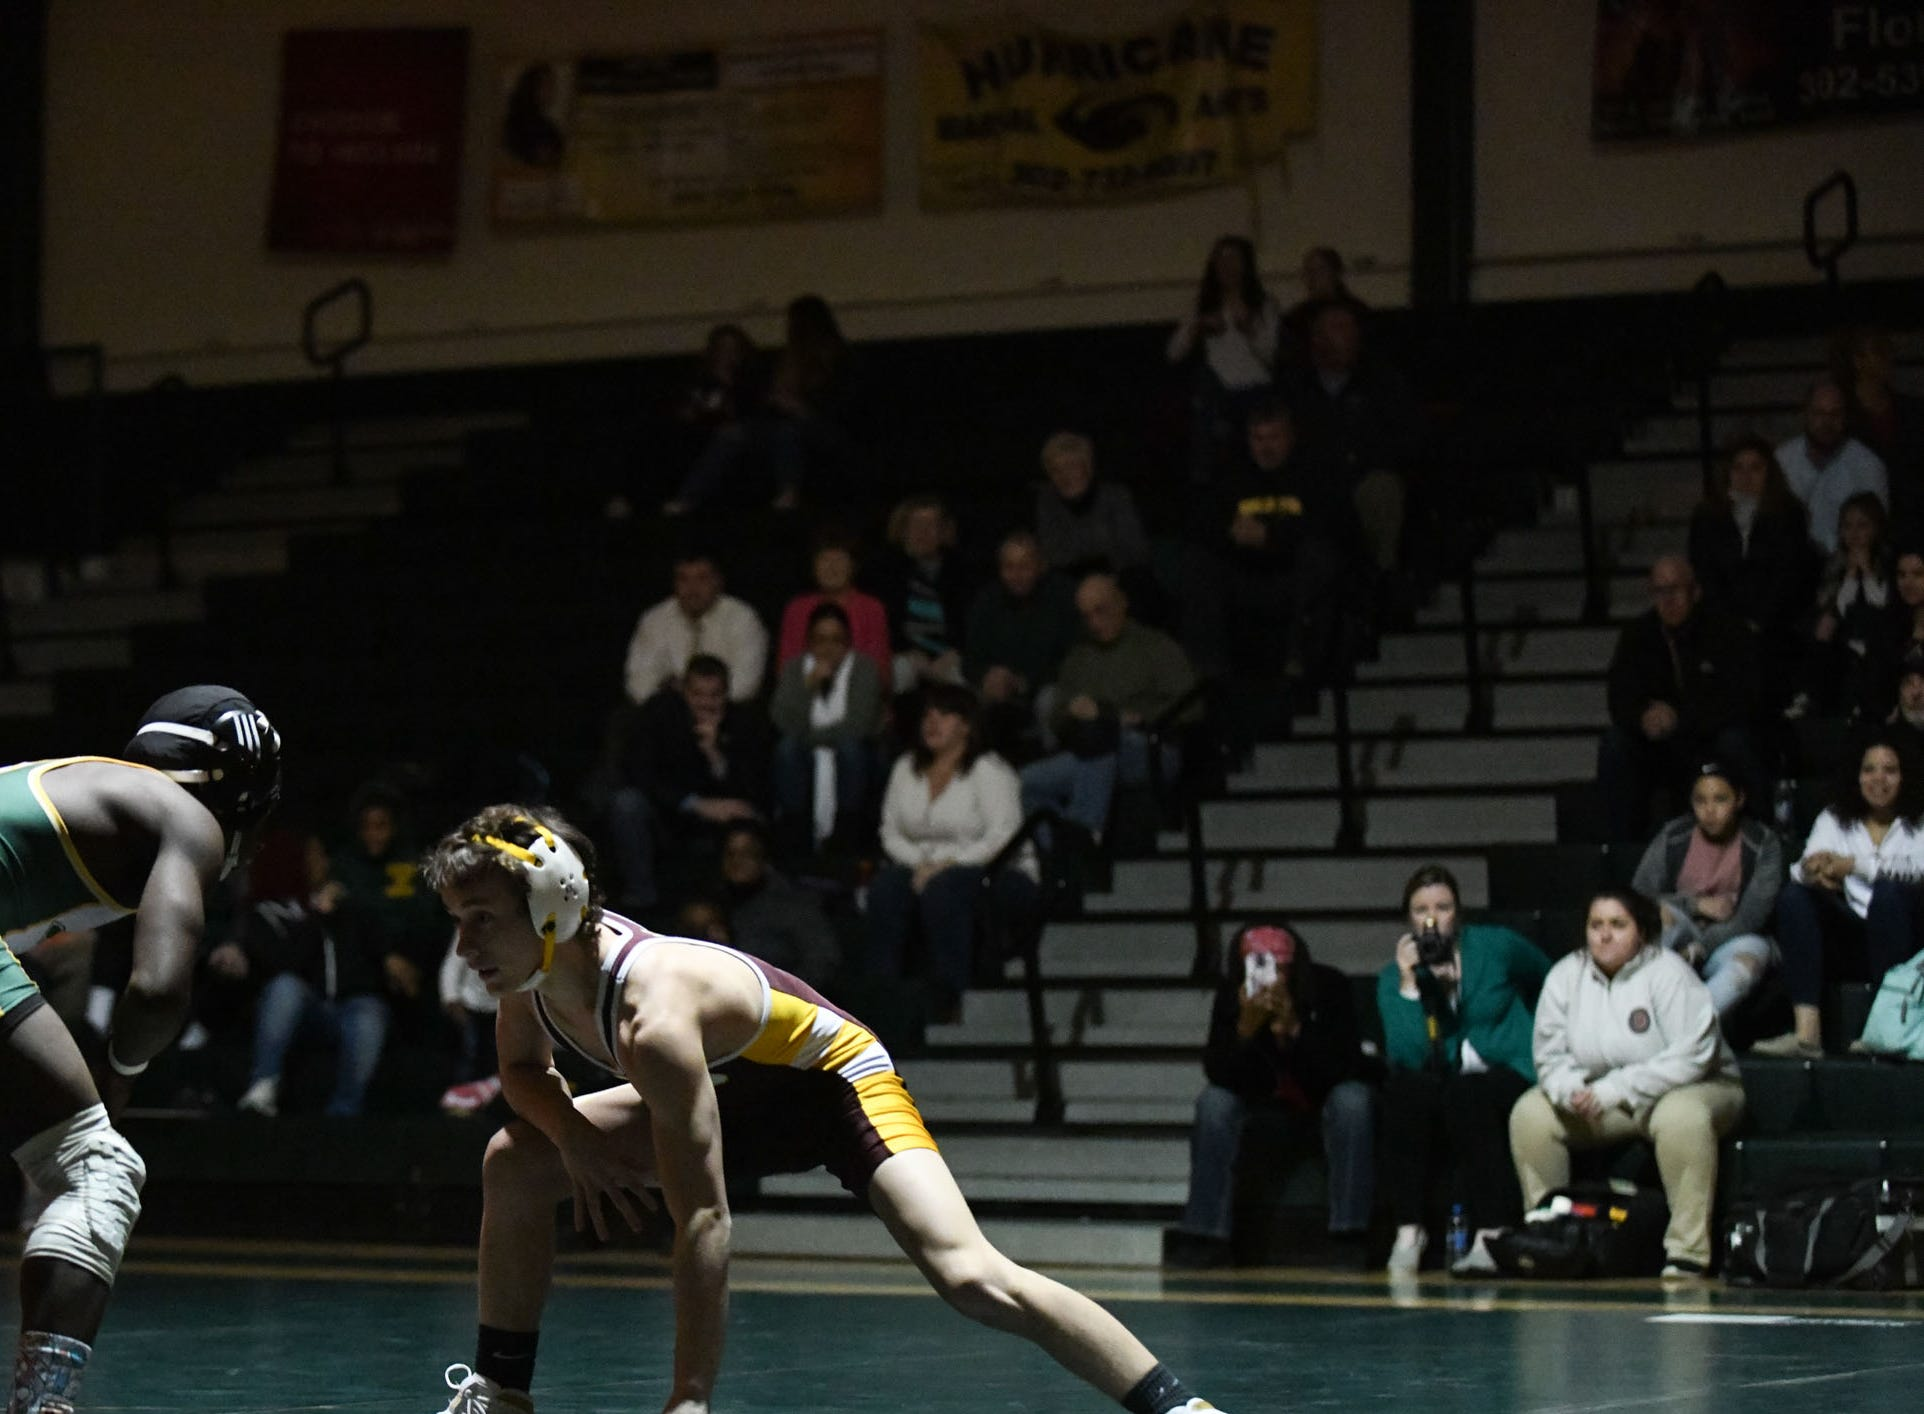 Indian River's William Rayne battled Milford's Trenton Grant during the 120lb match on Thursday, Jan 17, 2019 in Dagsboro, Del. Milford won the match 53-15.